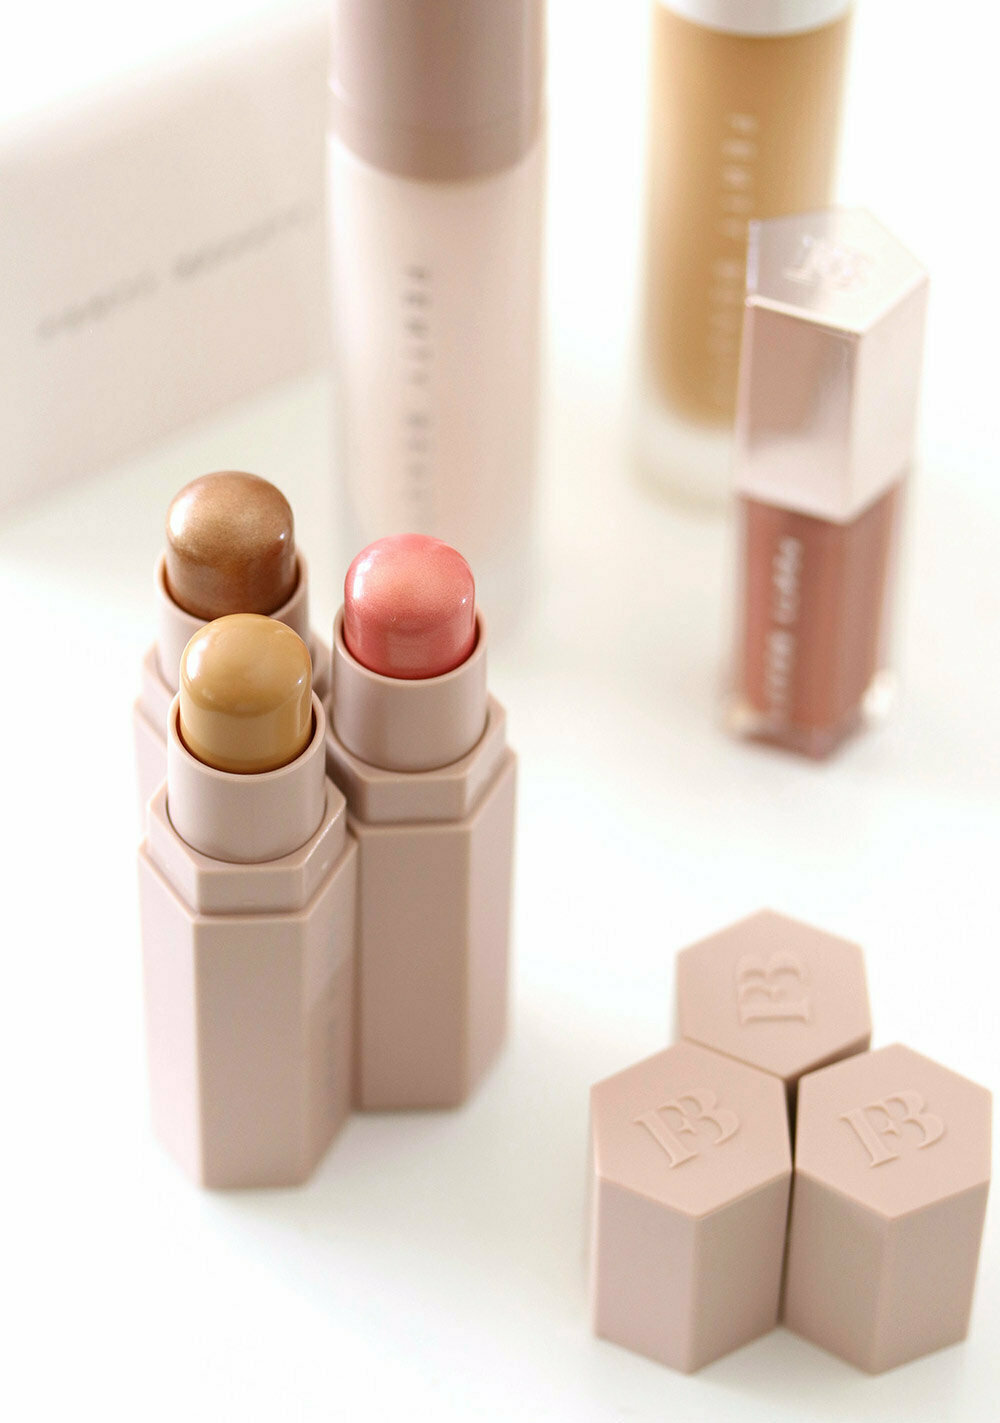 Корректор Fenty Beauty в Батайске